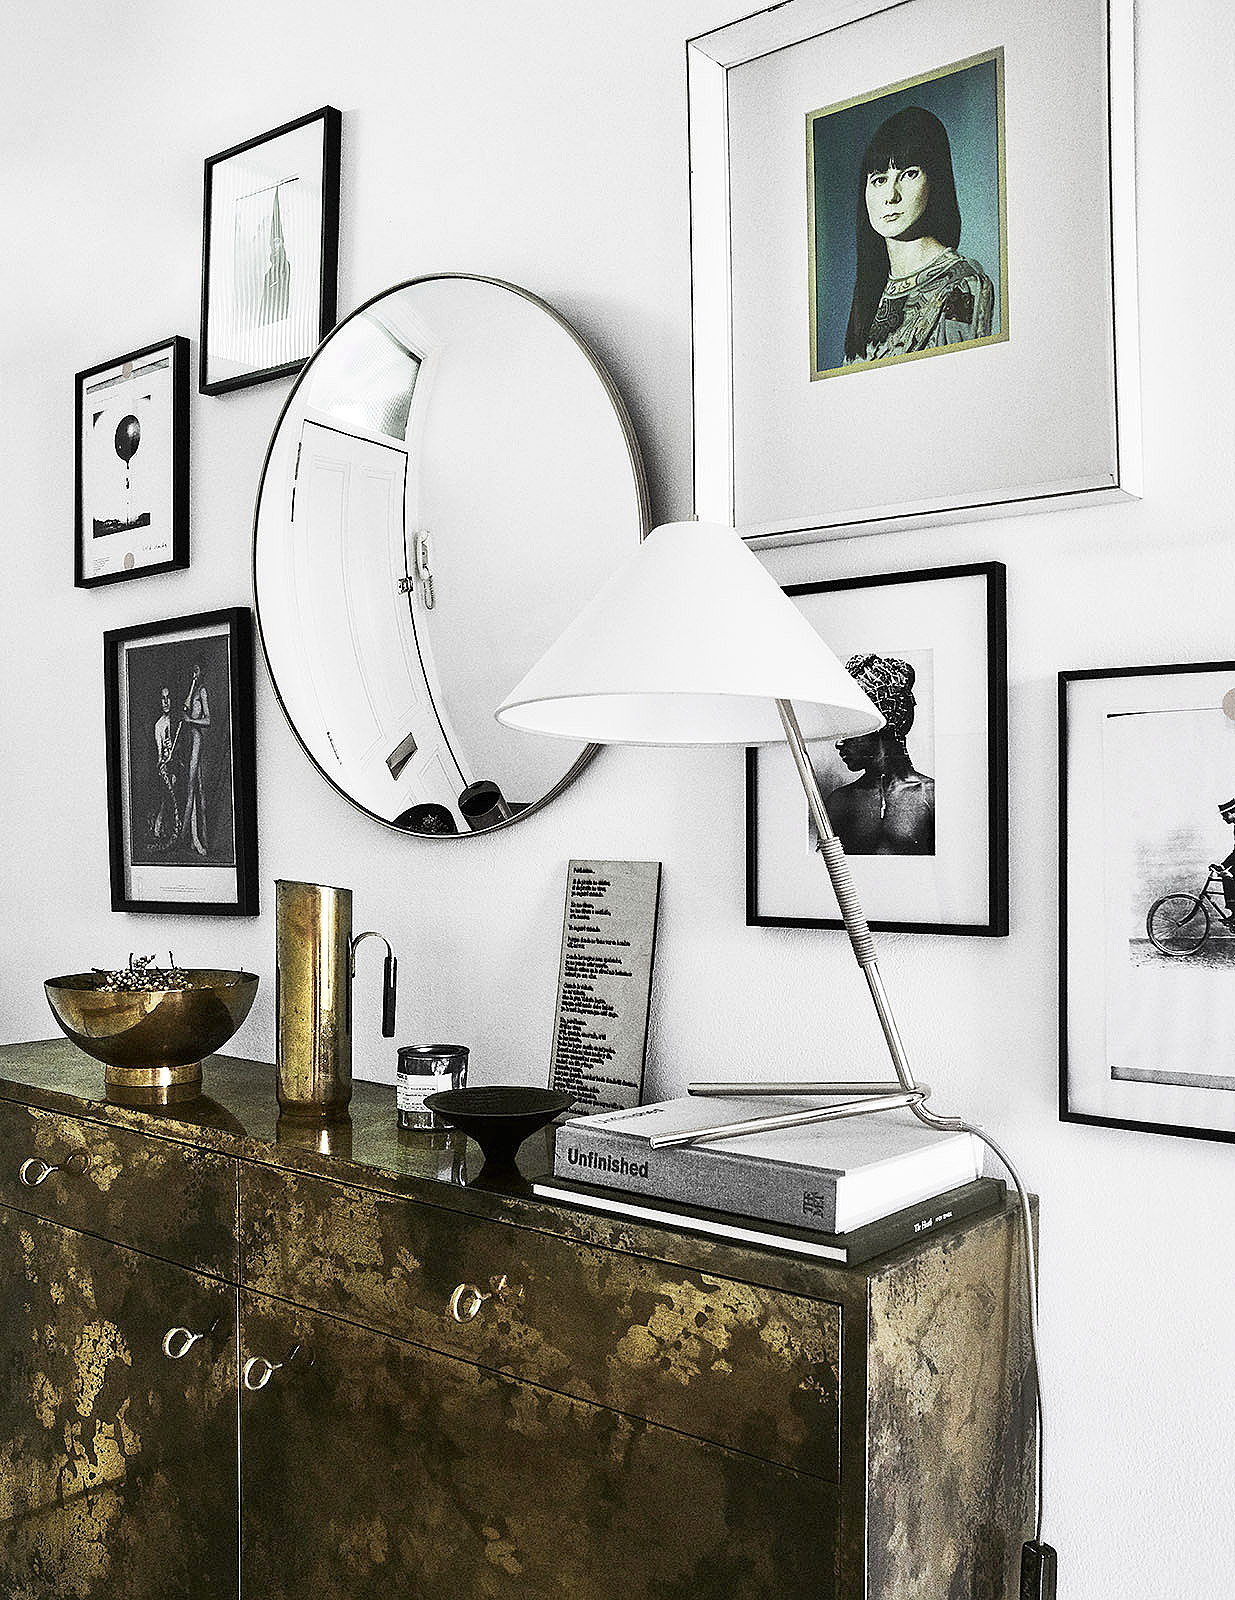 decor-aid-interior-design-hacks-and-ideas-metallics.jpg